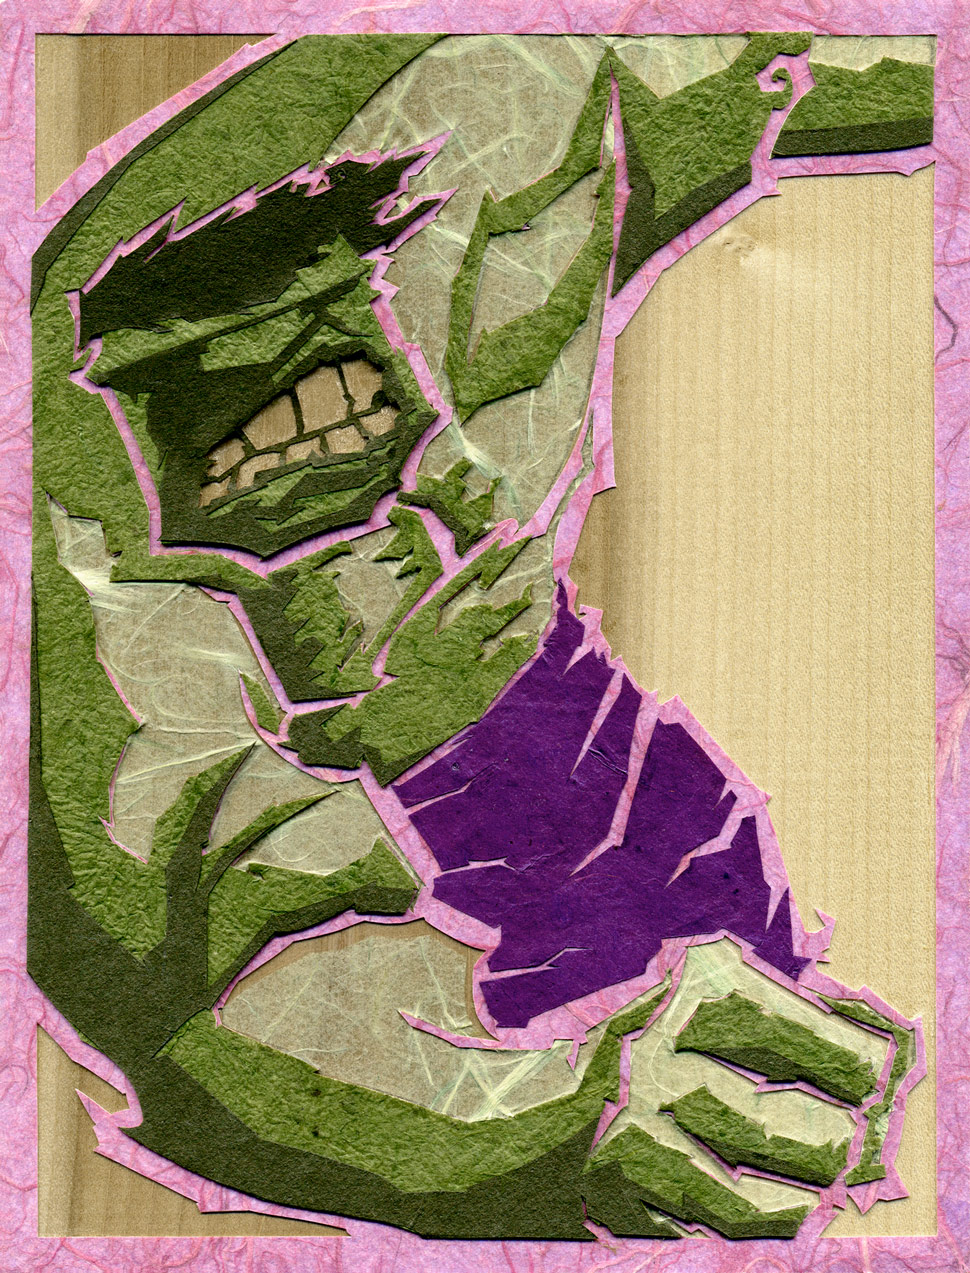 ⊛   Hulk    ⊛  cut paper + washi / wood   ⊛  8 x 6 in • 203 x 152 mm   ⊛  private collection